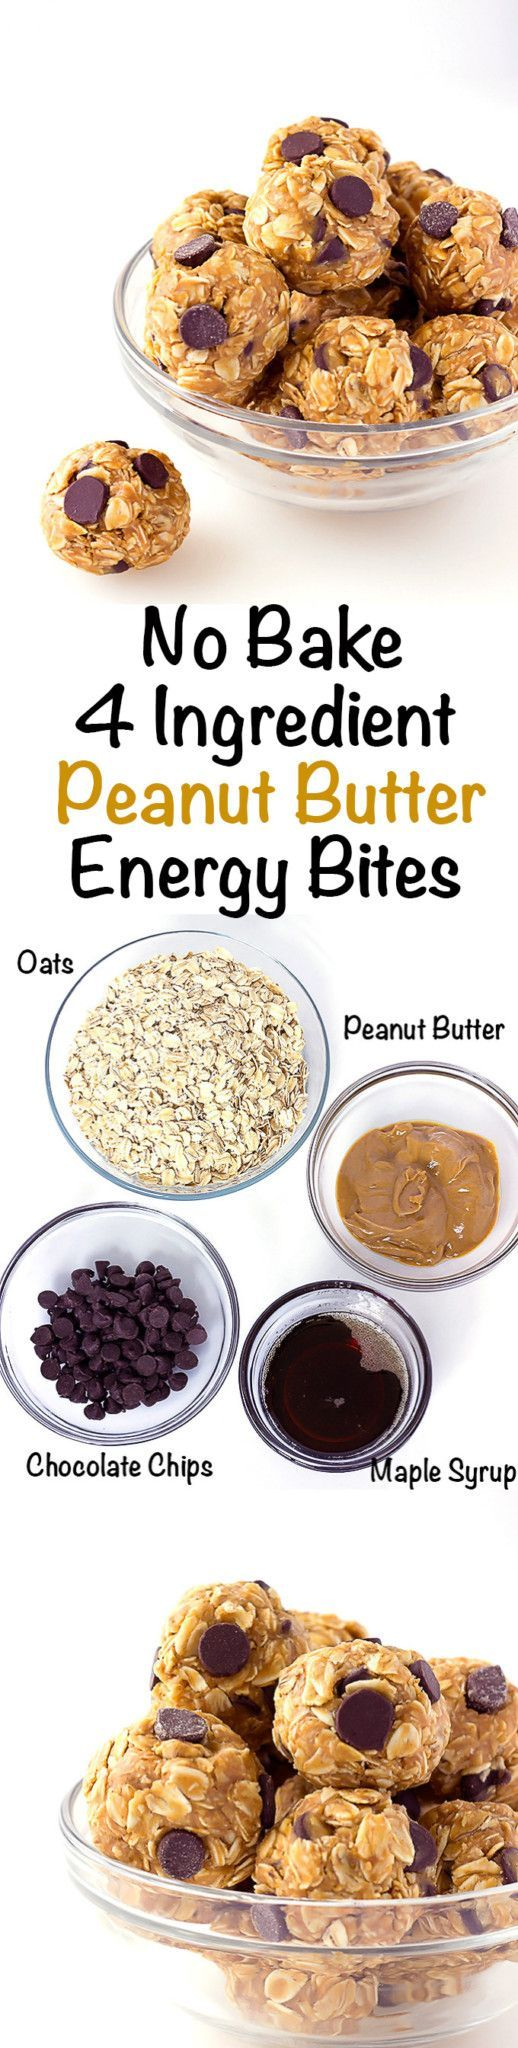 No Bake 4 Ingredient Energy Bites - A quick and easy make ahead snack for on the go!  Energy balls with peanut butter and chocolate chips!